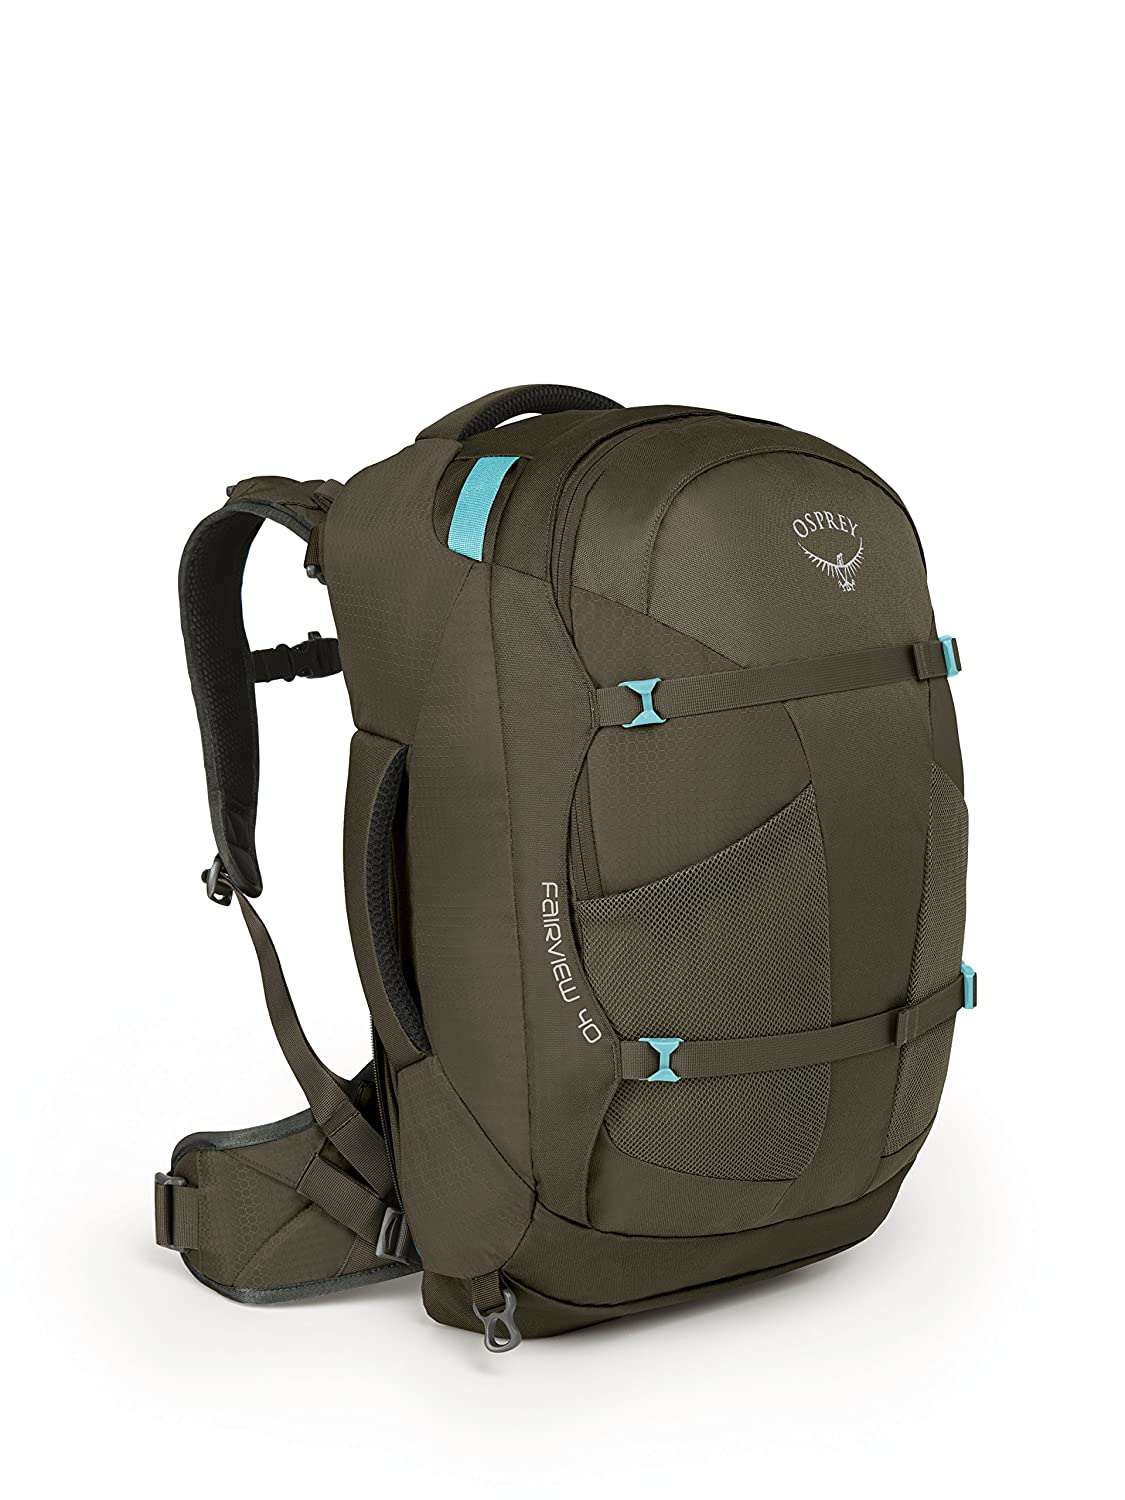 Osprey Fairview 40 Women's Travel Pack - Misty Grey (WS/WM) Osprey Europe Limited 10001134